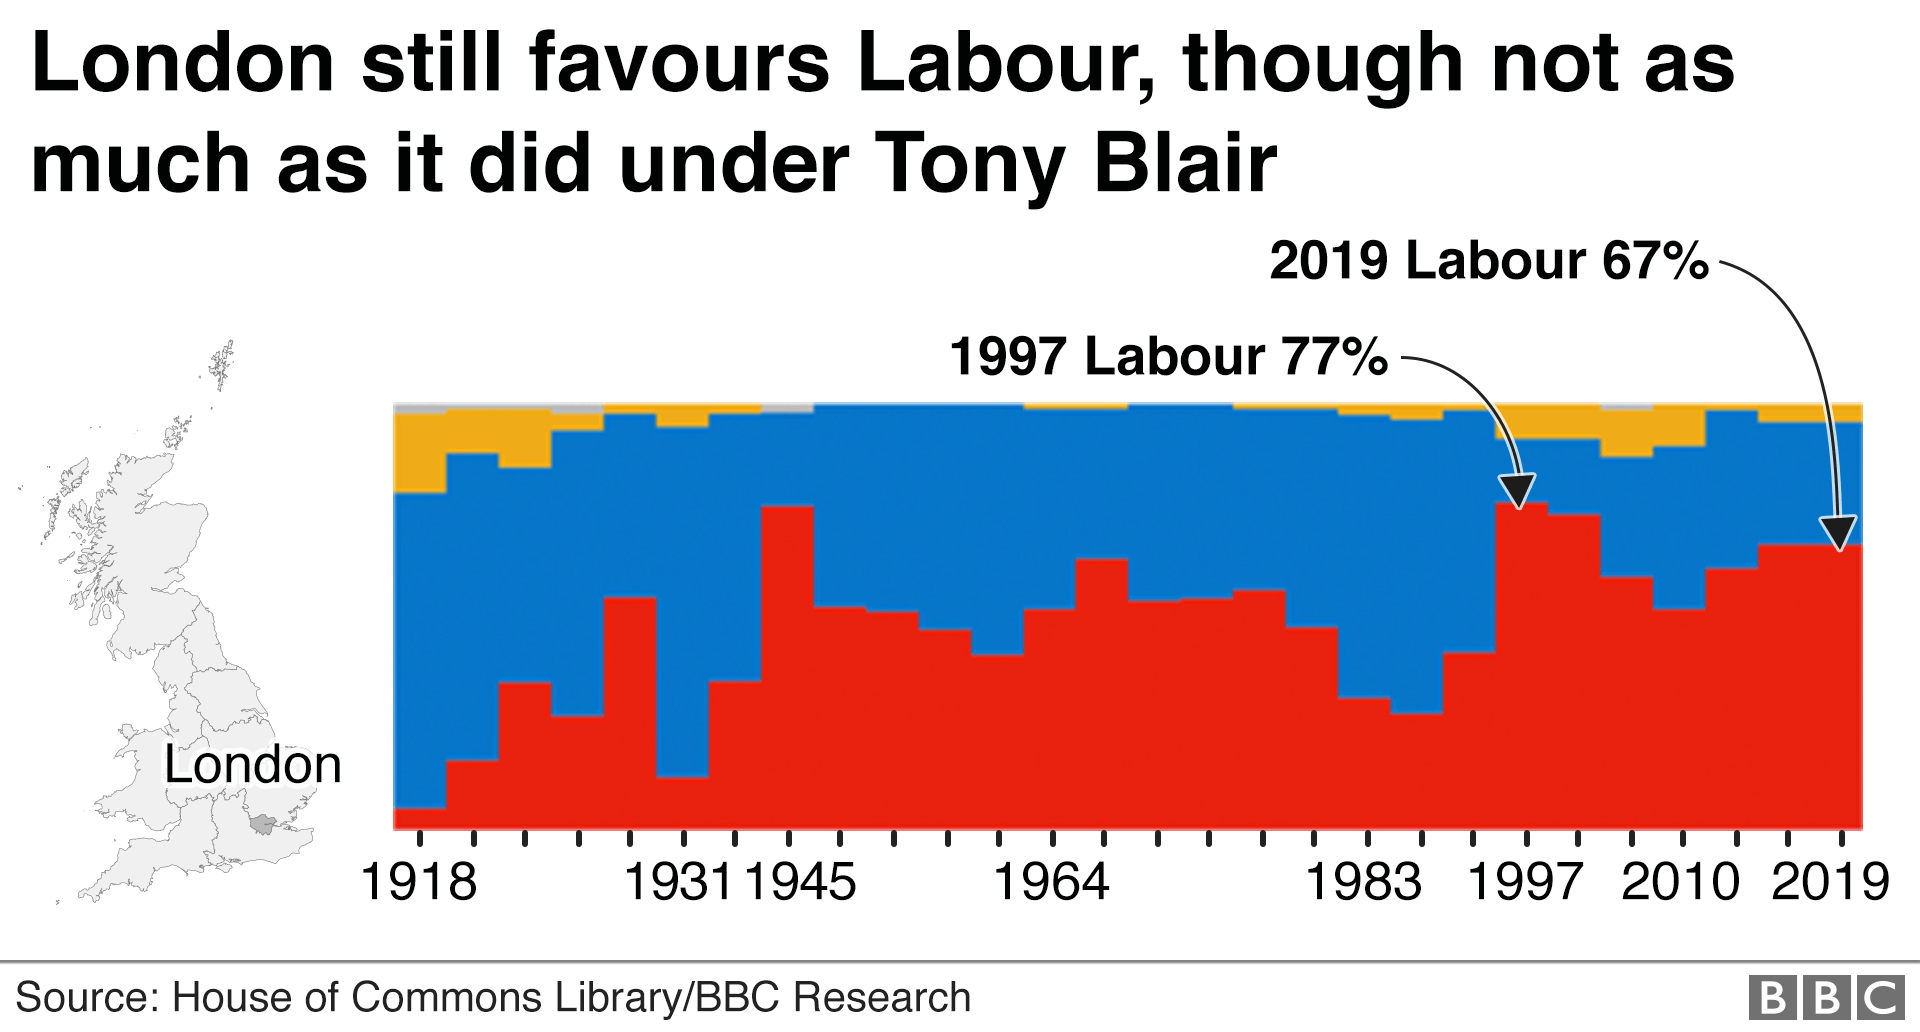 Chart showing general elections in London since 1918